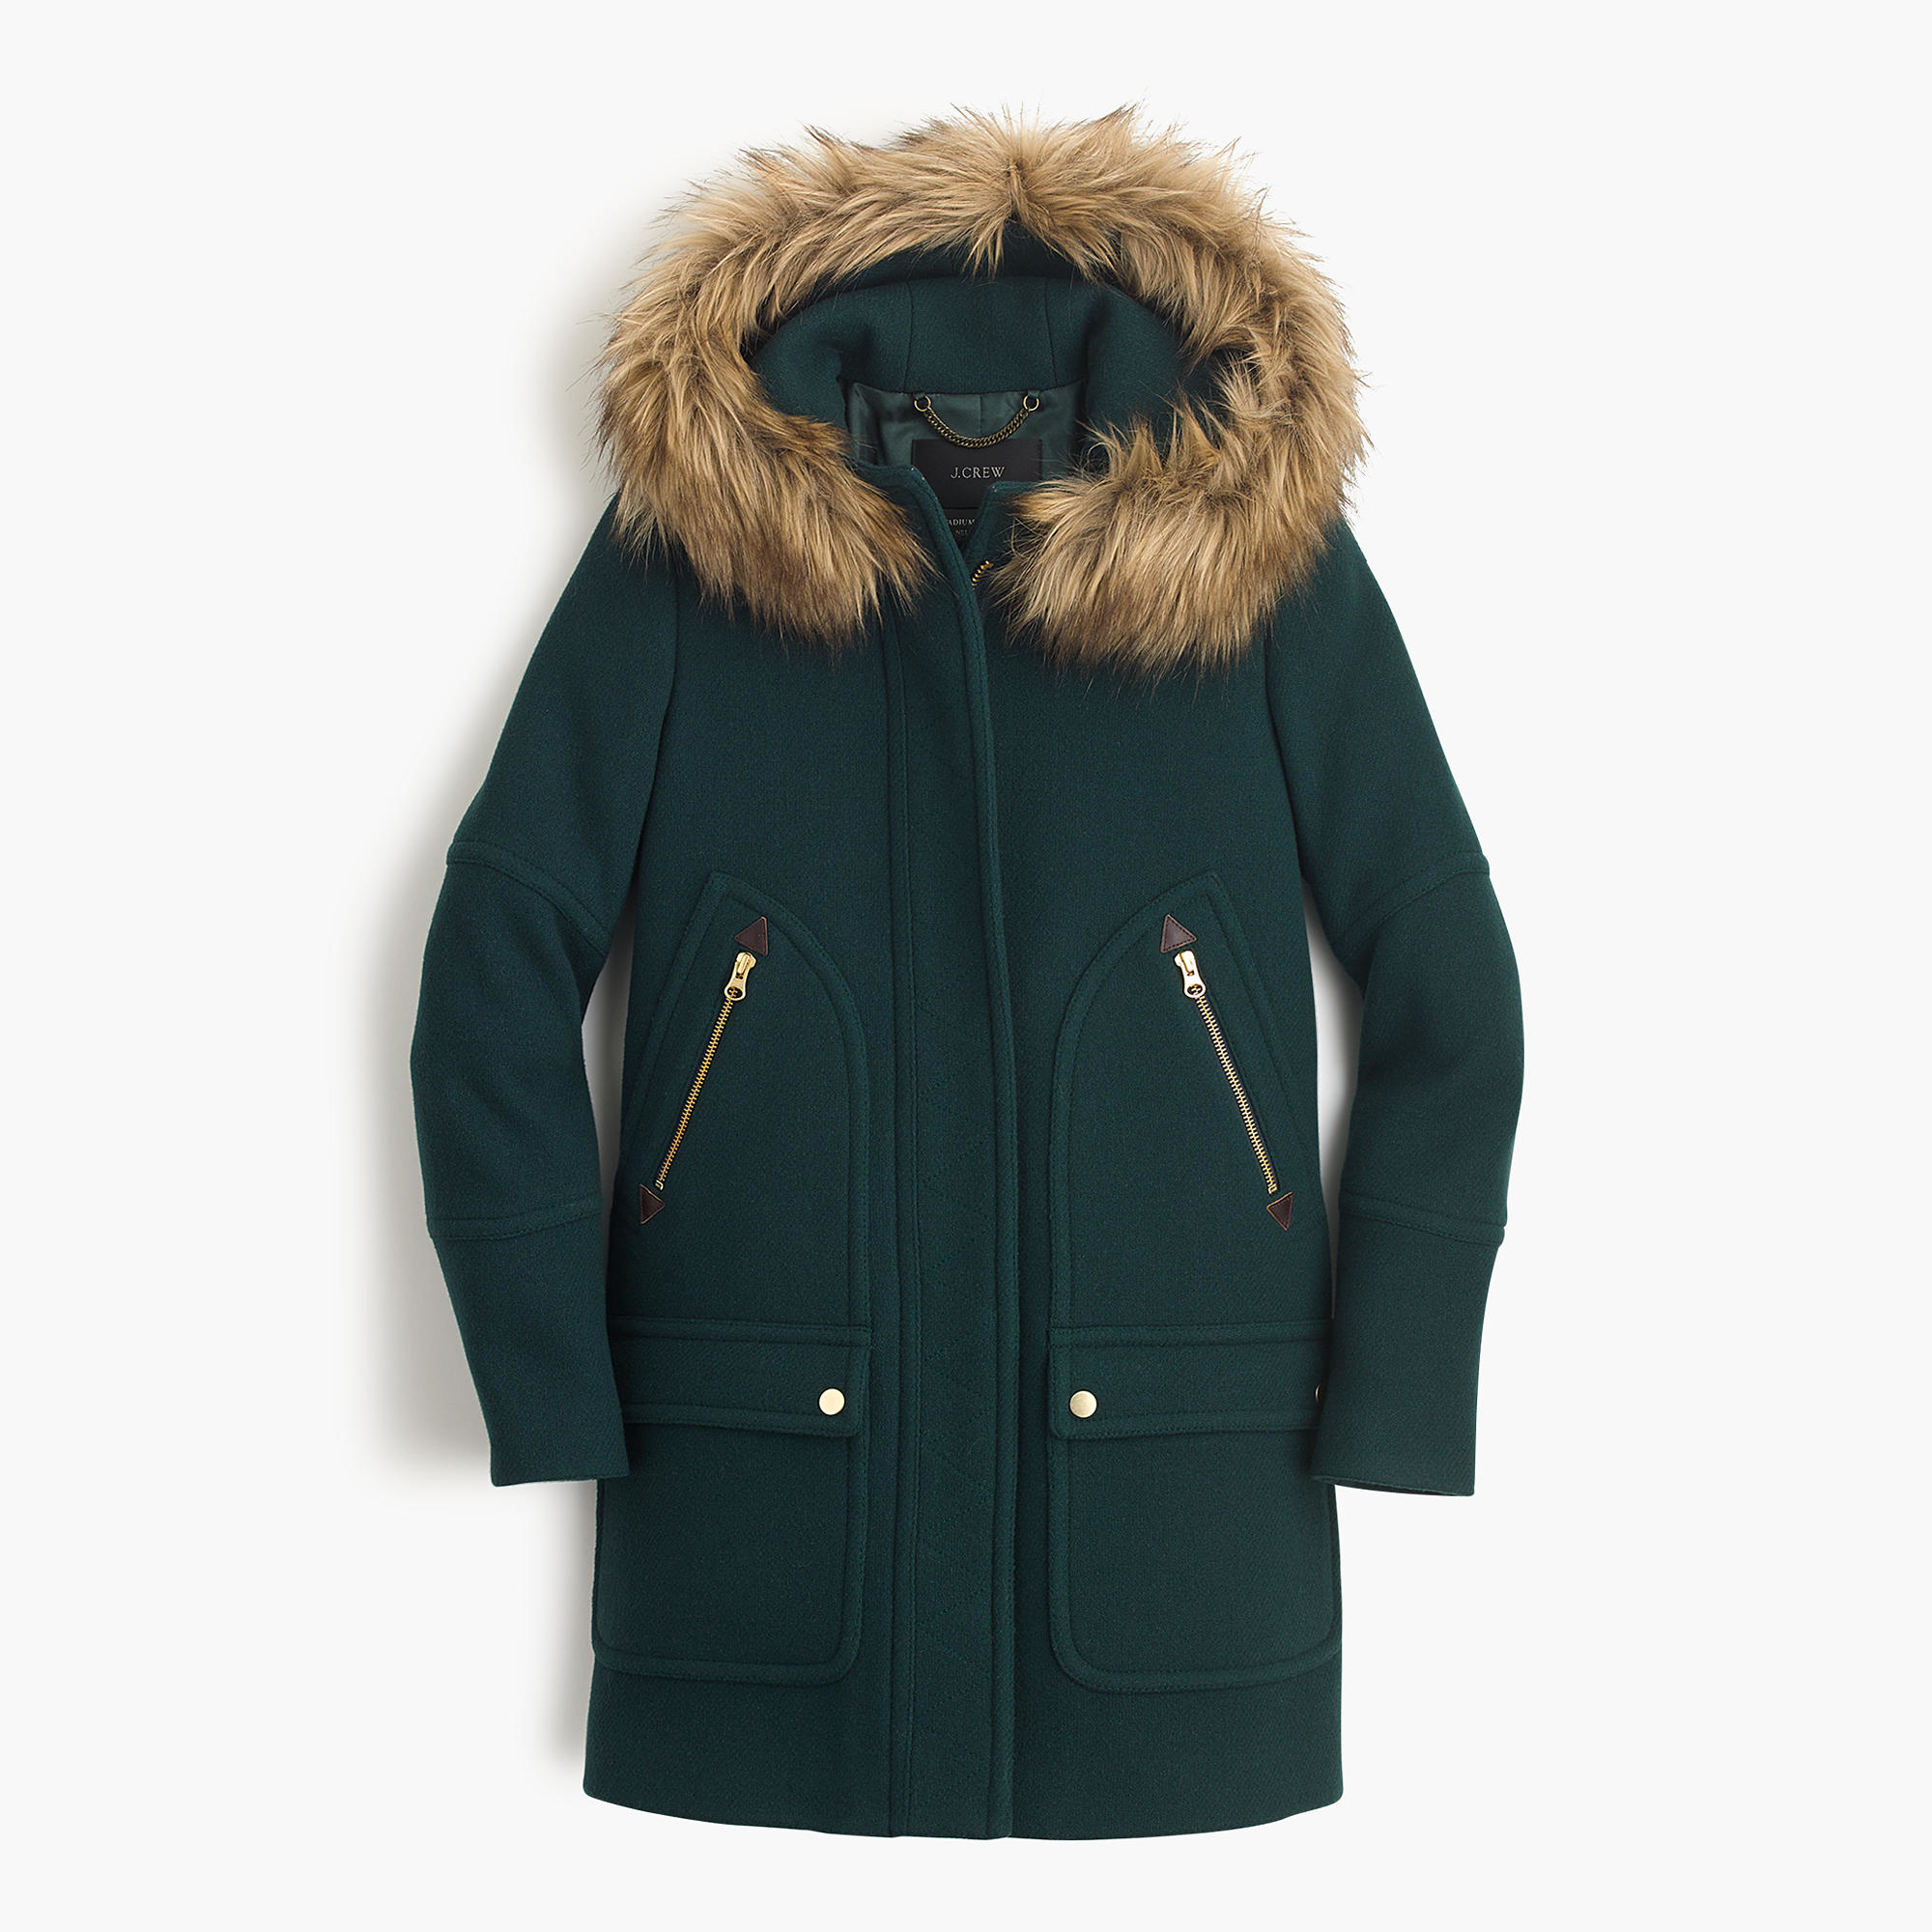 J.crew Petite Chateau Parka In Stadium-cloth in Green | Lyst